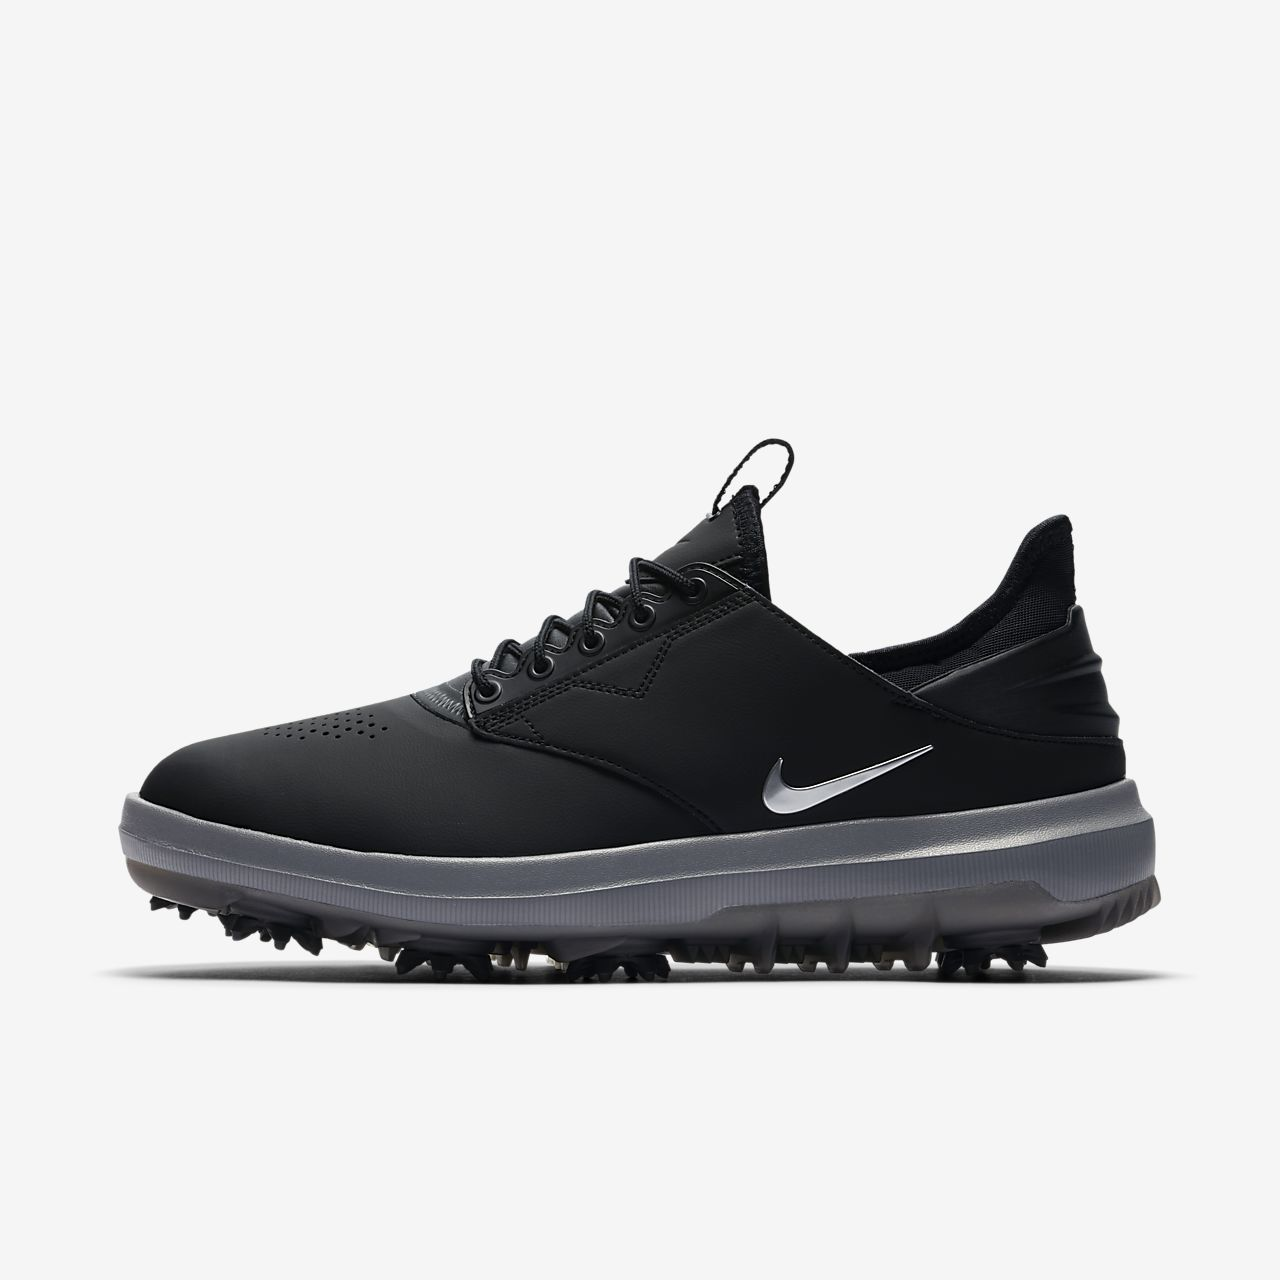 95bff043934 Low Resolution Nike Air Zoom Direct Men s Golf Shoe Nike Air Zoom Direct  Men s Golf Shoe